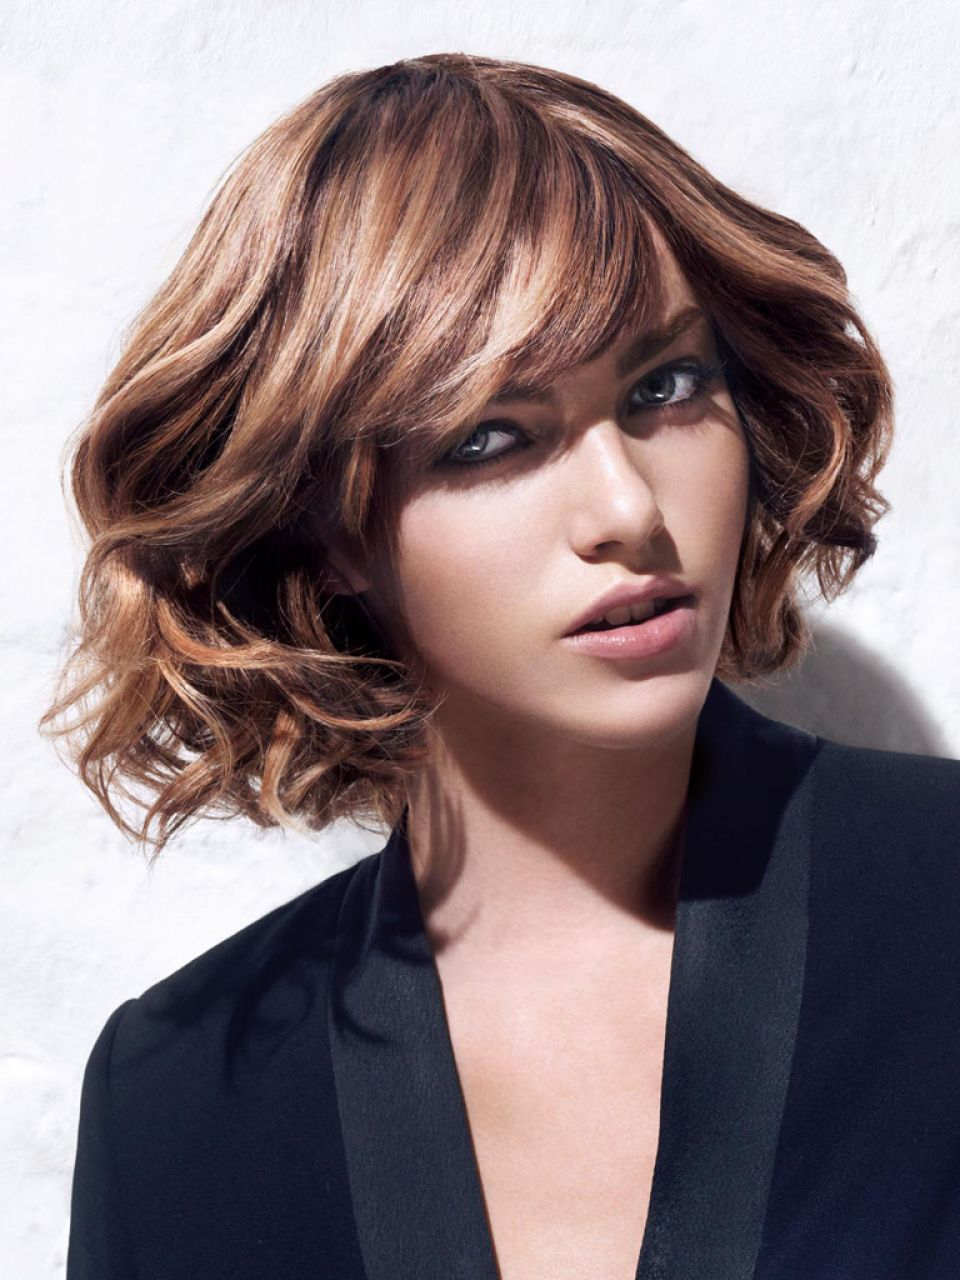 Damenfrisuren Top Top 25 Frisuren Fur Damen Februar 2019